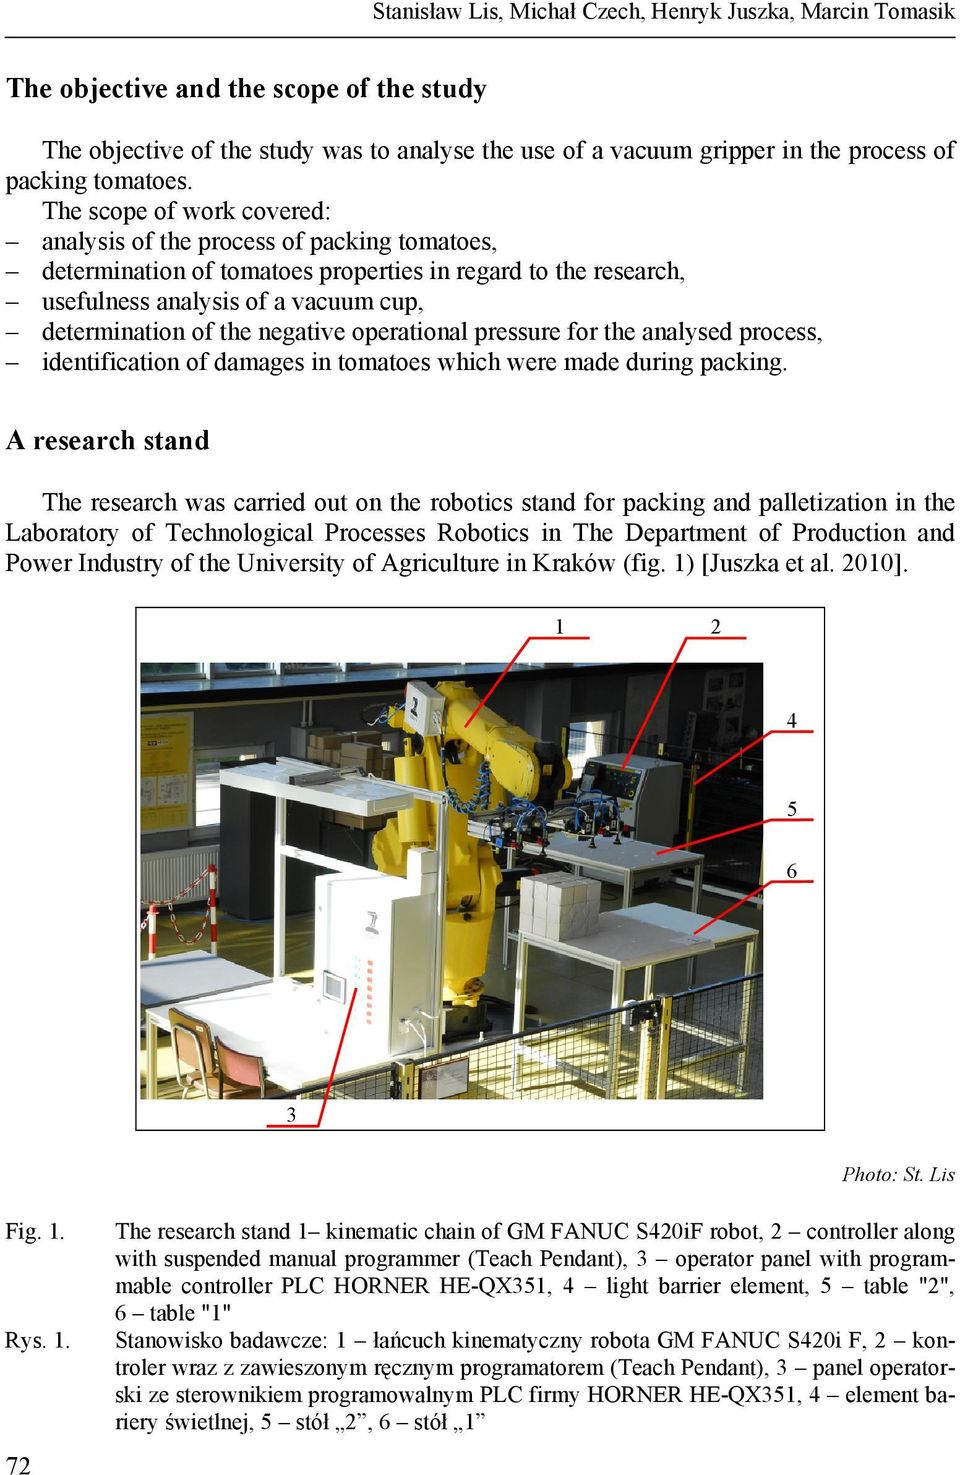 The scope of work covered: analysis of the process of packing tomatoes, determination of tomatoes properties in regard to the research, usefulness analysis of a vacuum cup, determination of the